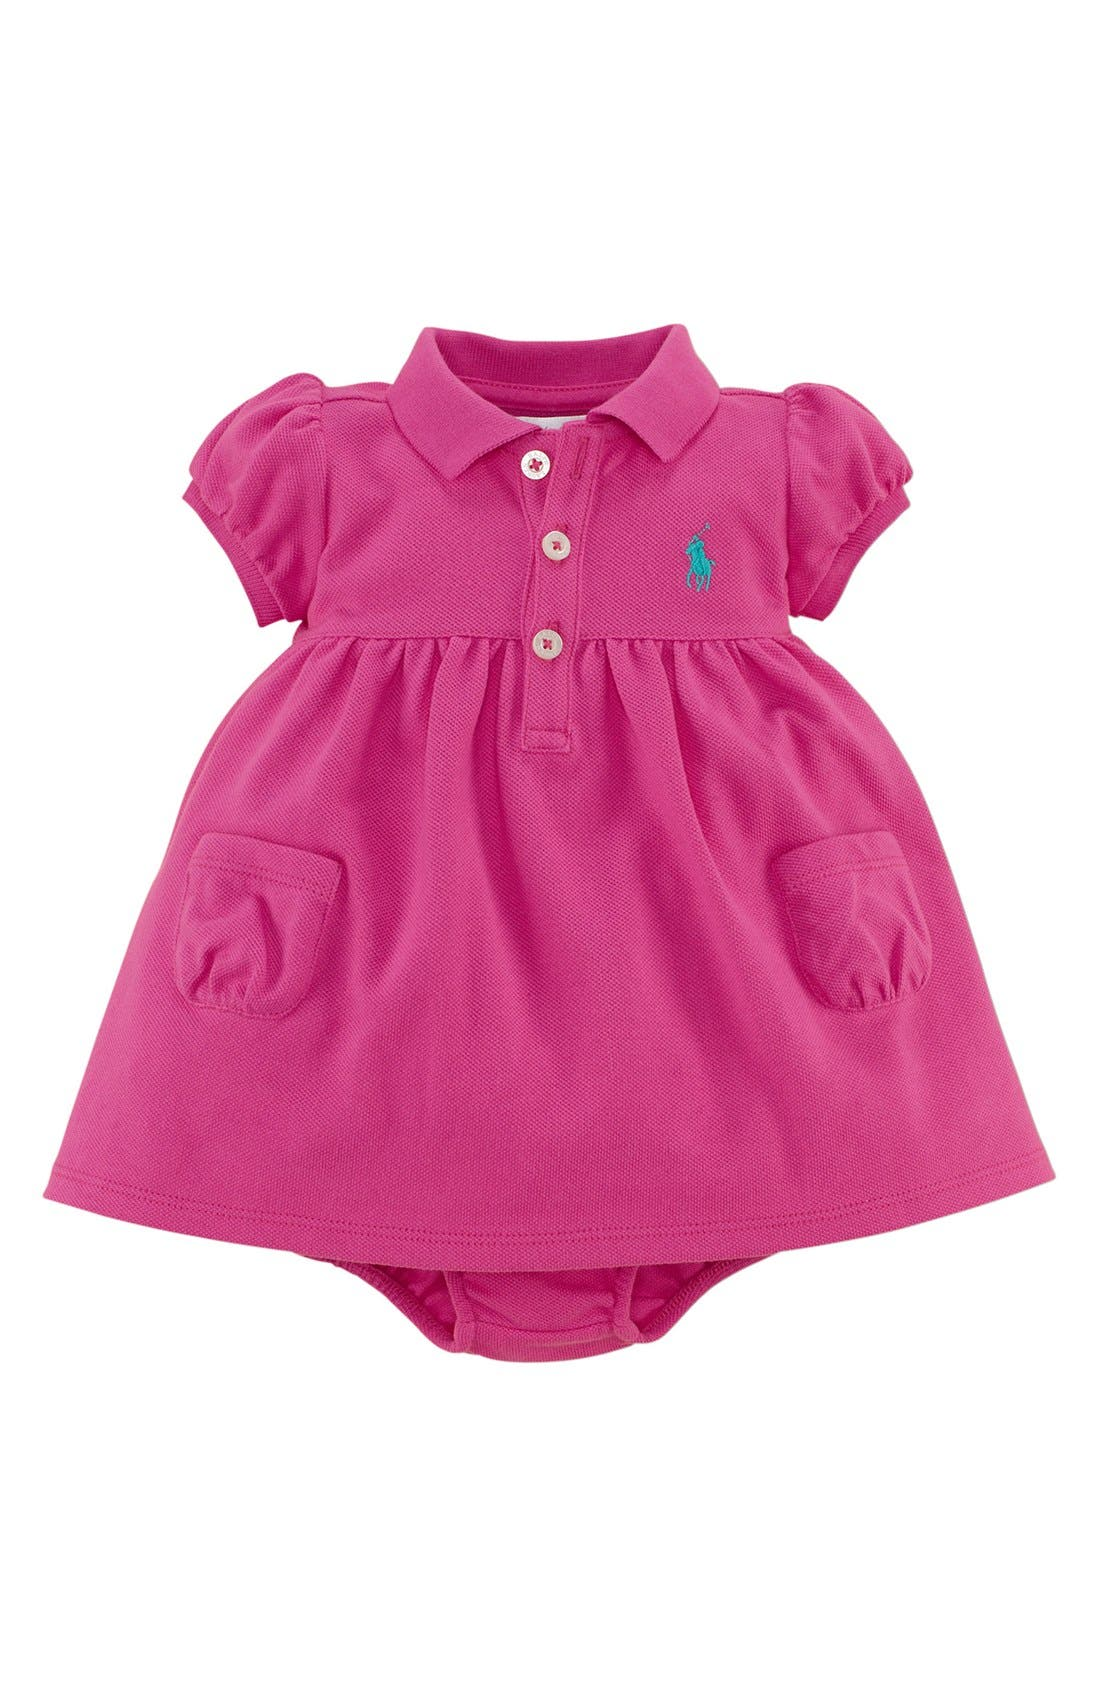 Alternate Image 1 Selected - Ralph Lauren Cotton Polo Dress & Bloomers (Baby Girls)